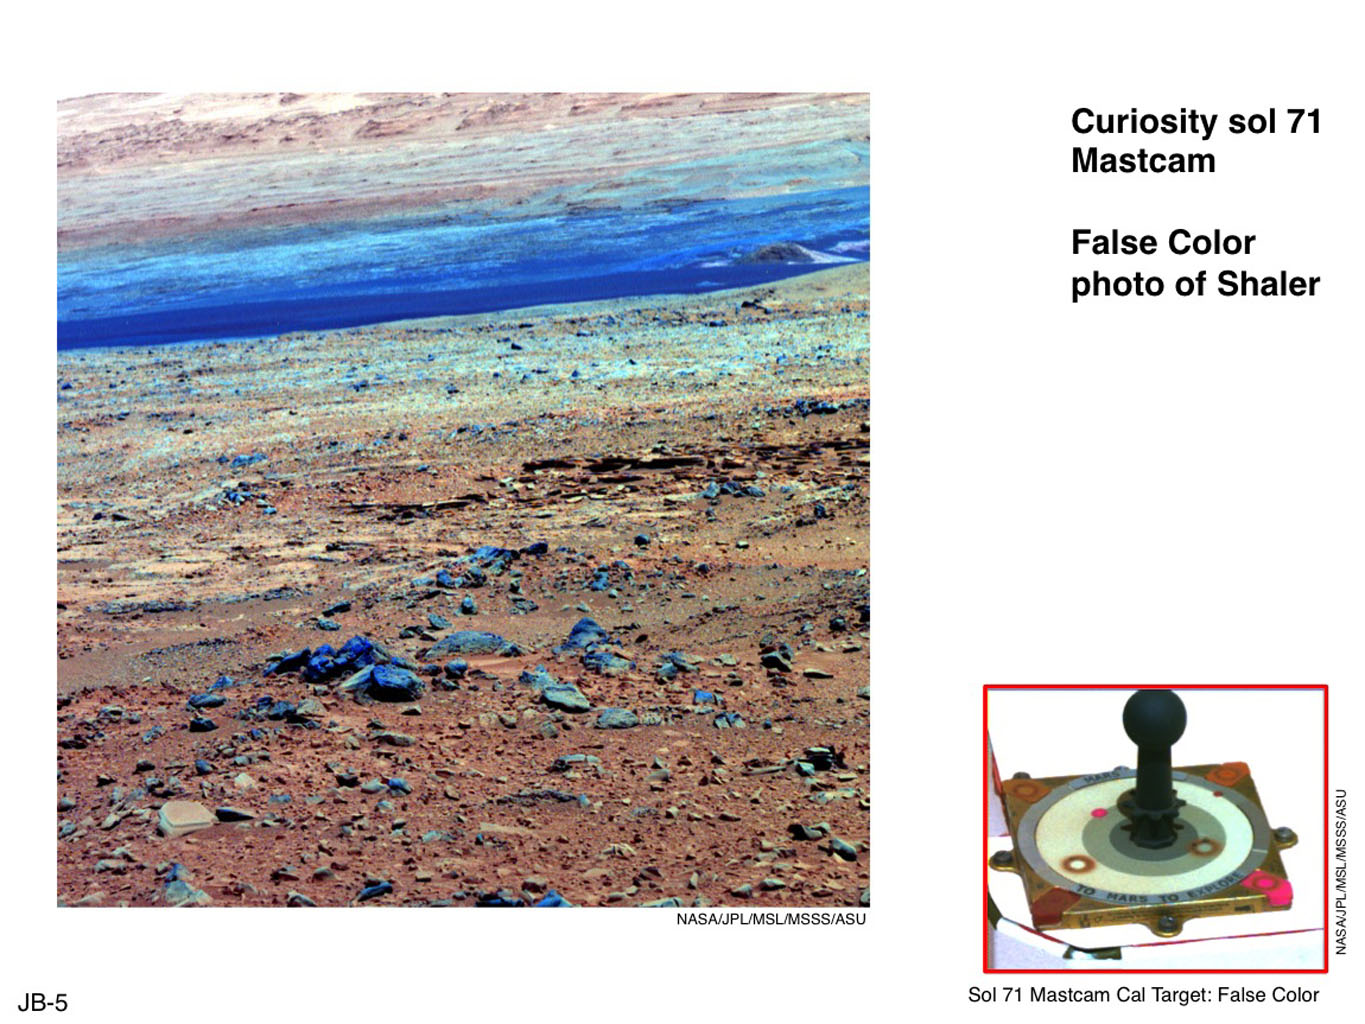 This image of terrain inside Mars' Gale Crater and the calibration target for Mastcam on NASA's Mars rover Curiosity illustrate how false color can be used to make differences more evident in the materials in the scene.